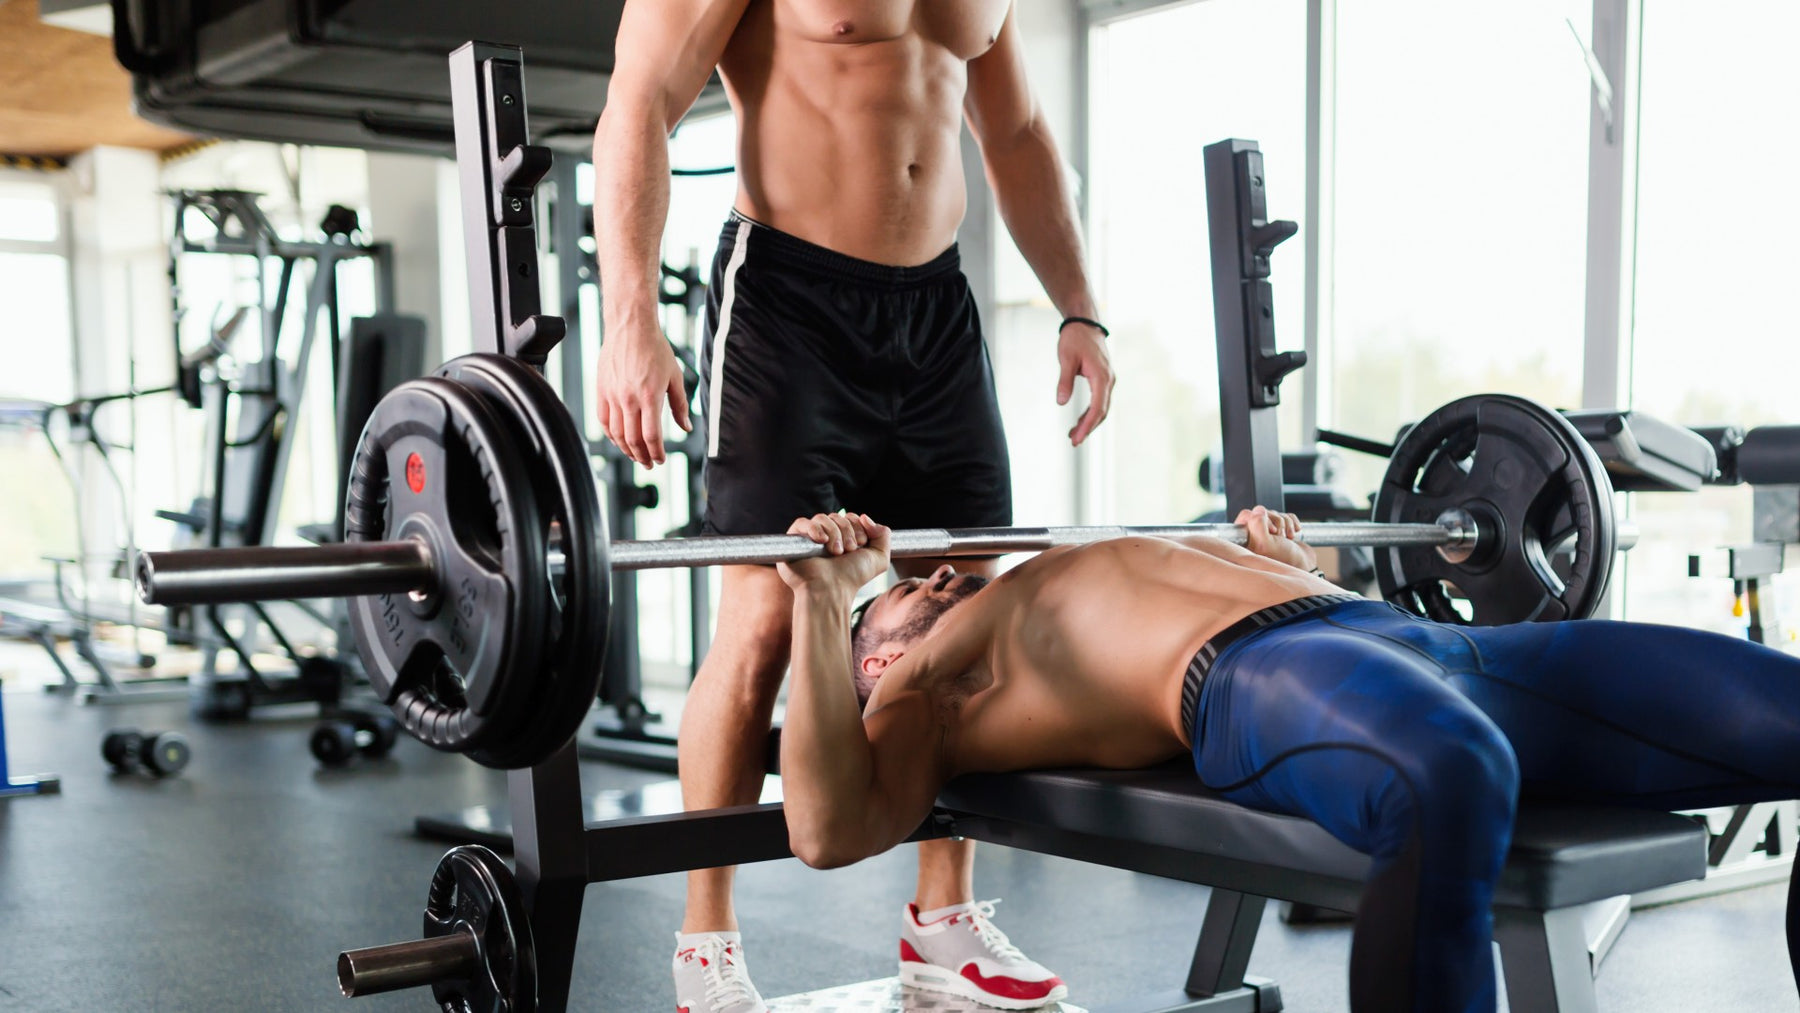 7 Tips to Hire the Perfect Personal Trainer